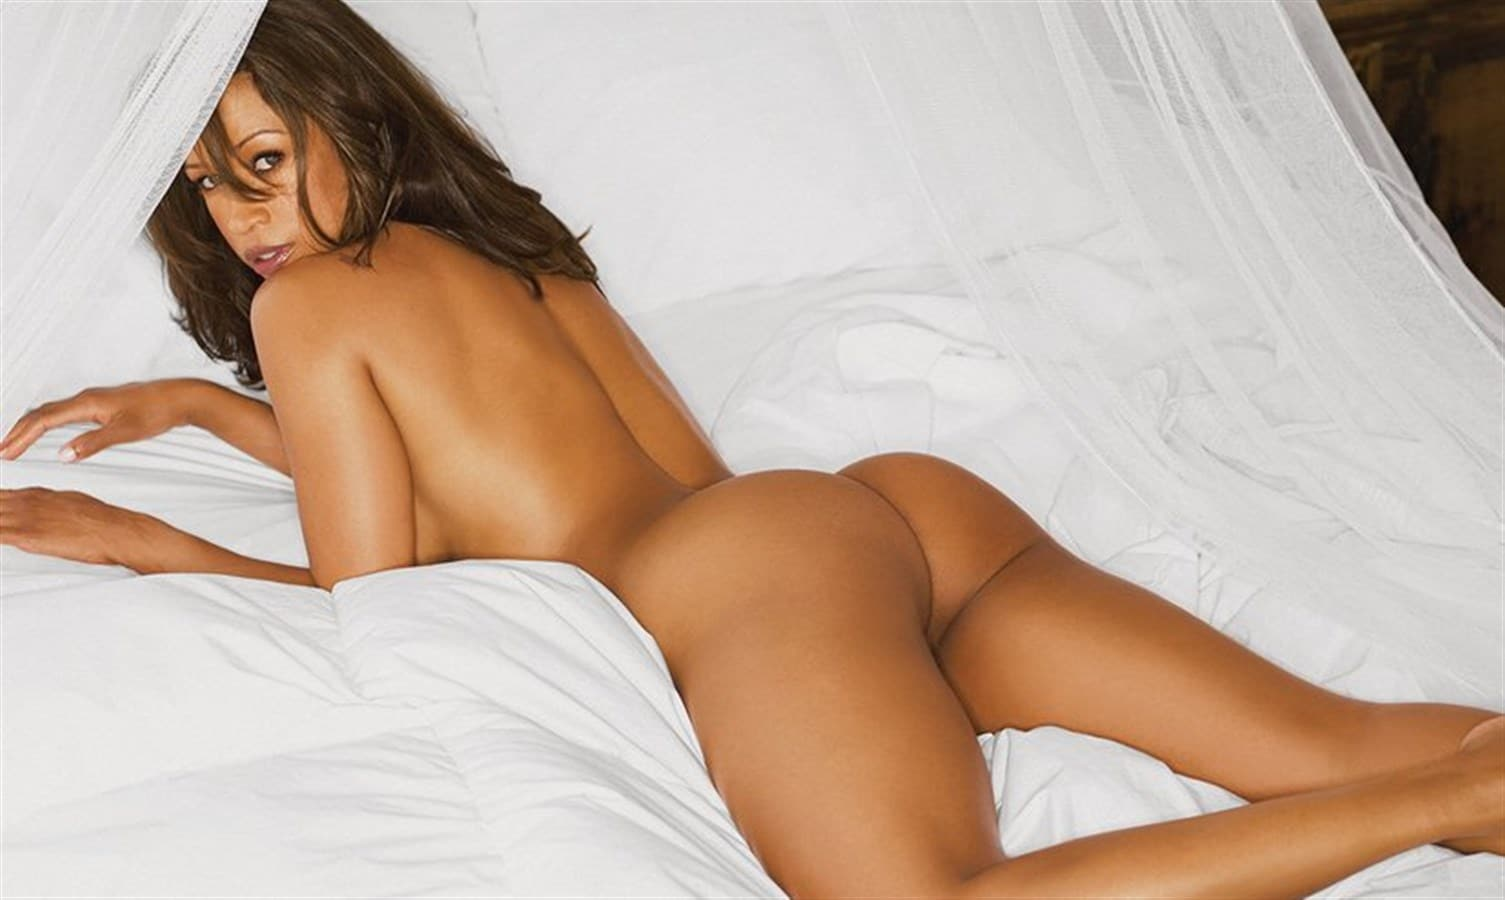 stacey dash nude pictures